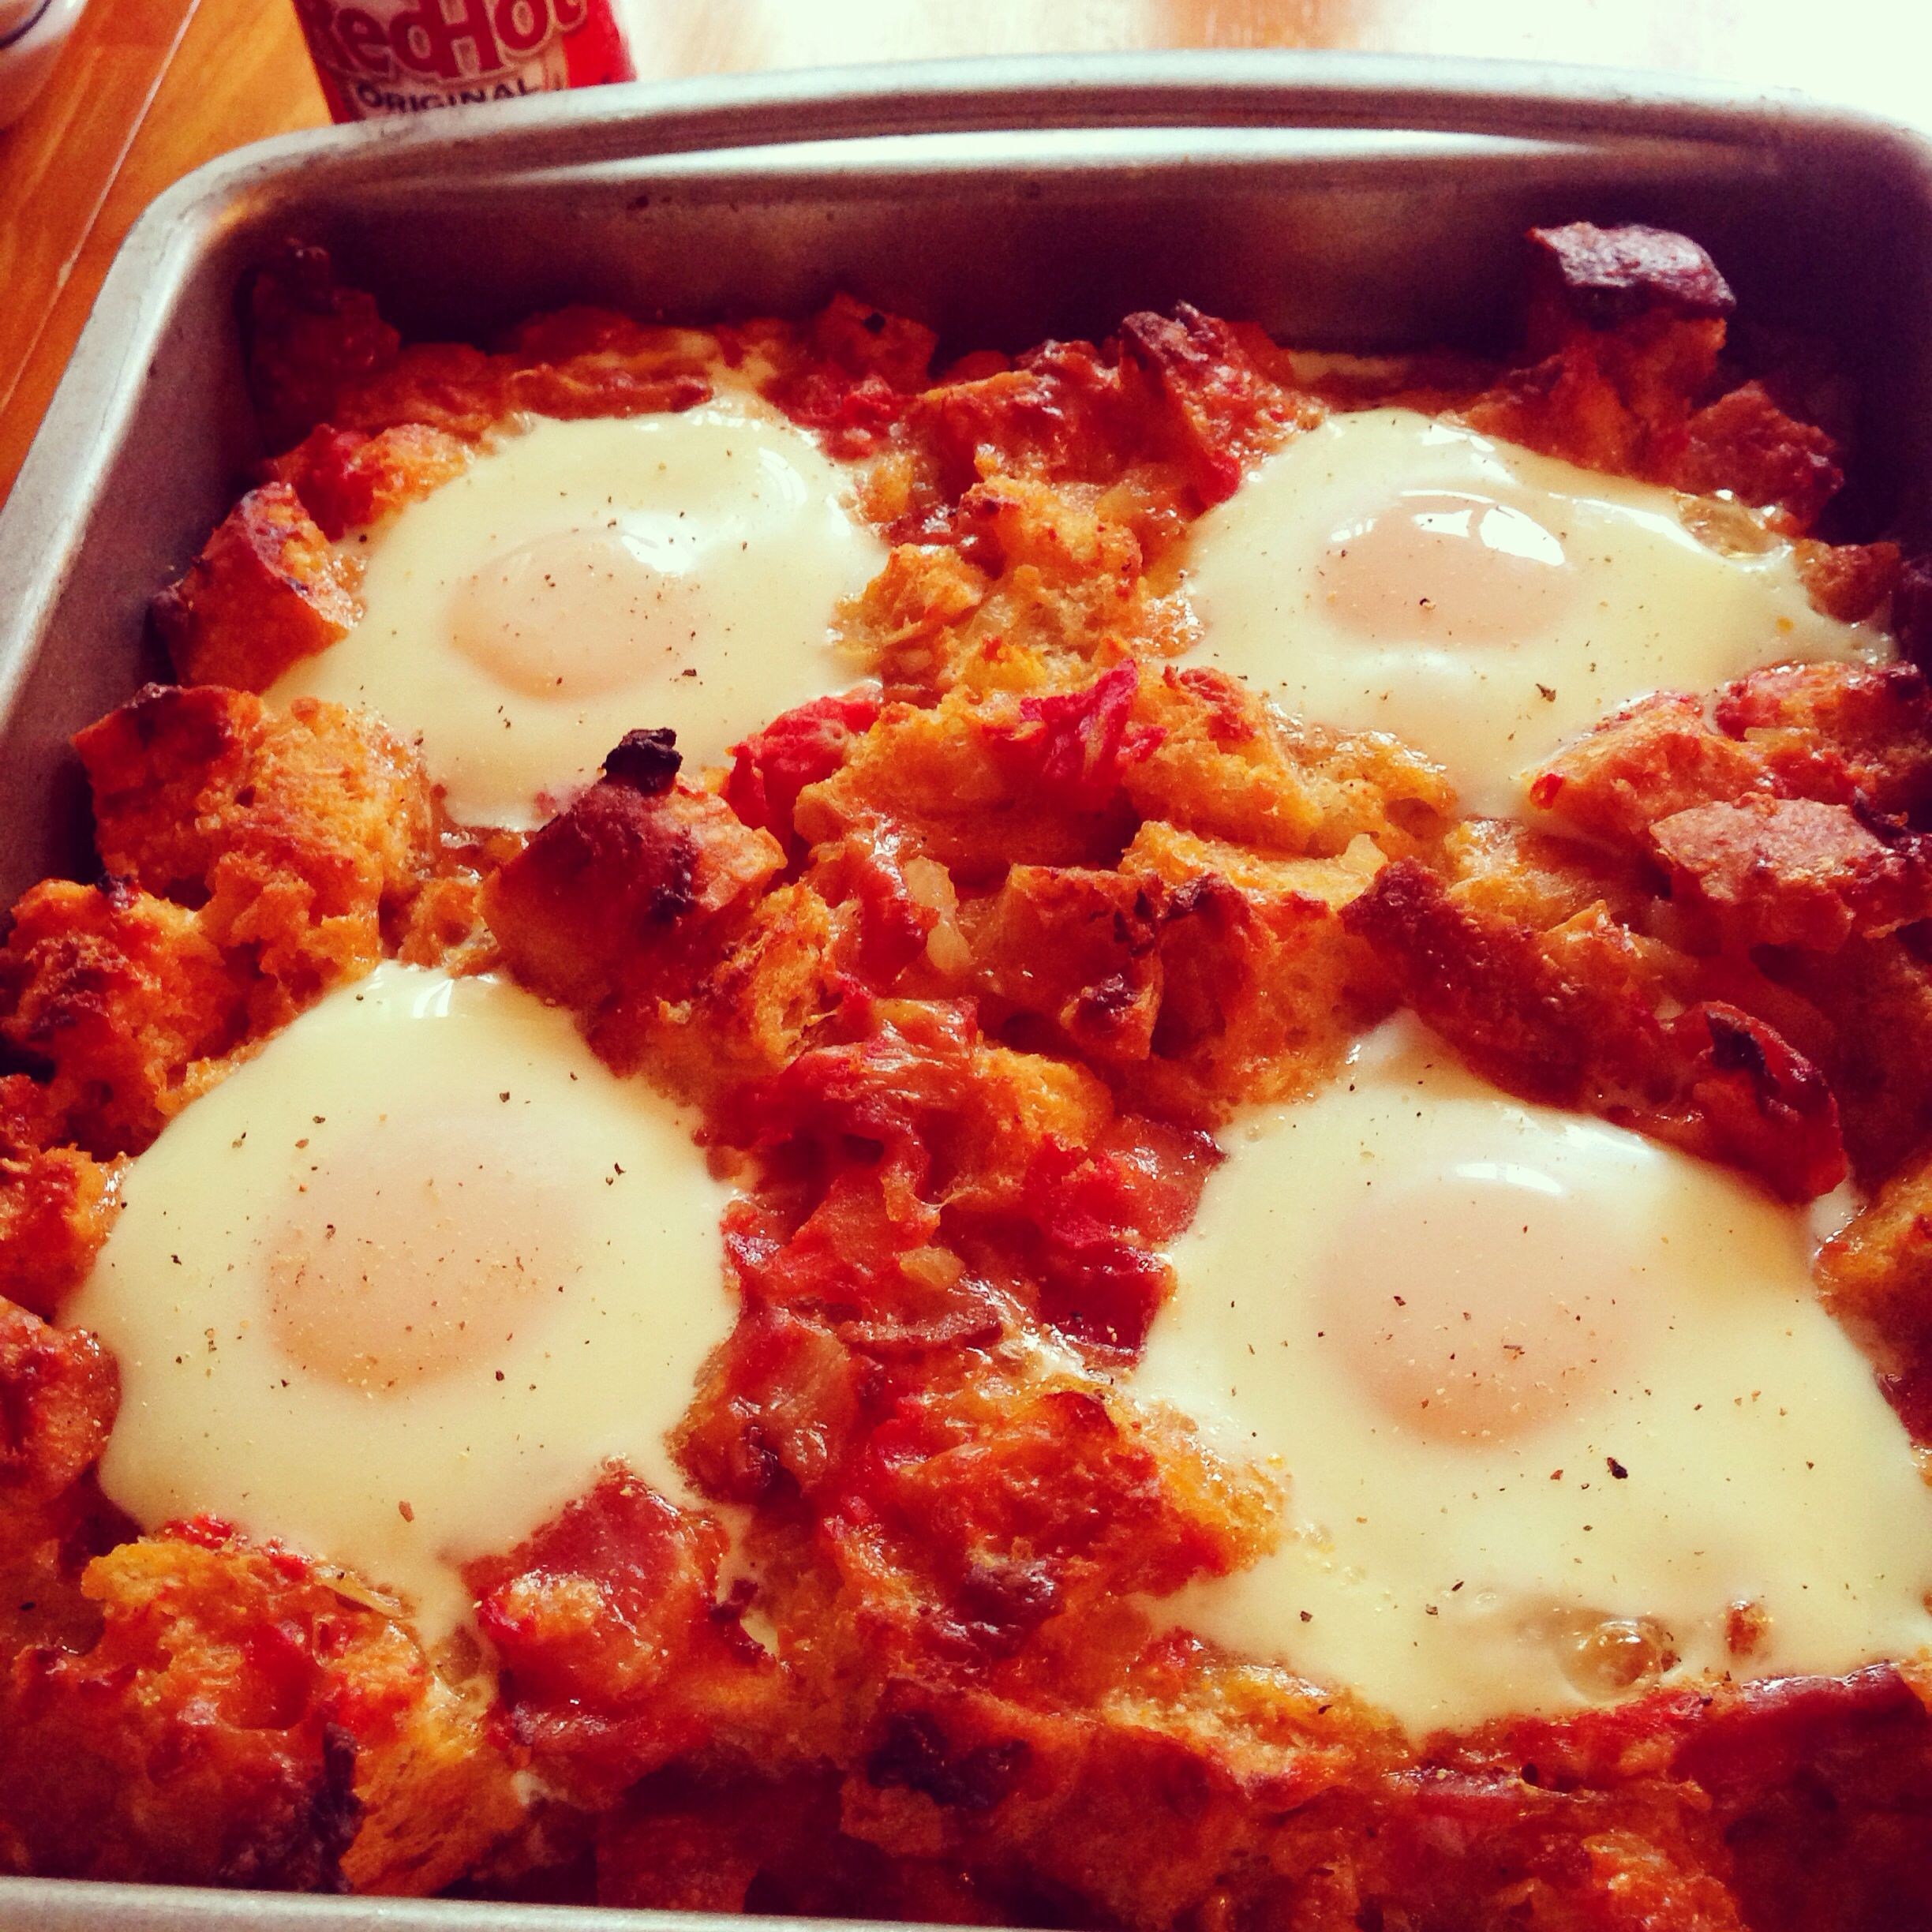 #breakfast bake with cubed sourdough bread, bacon, Monterey Jack and cheddar cheese, tomatoes topped with cracked egg